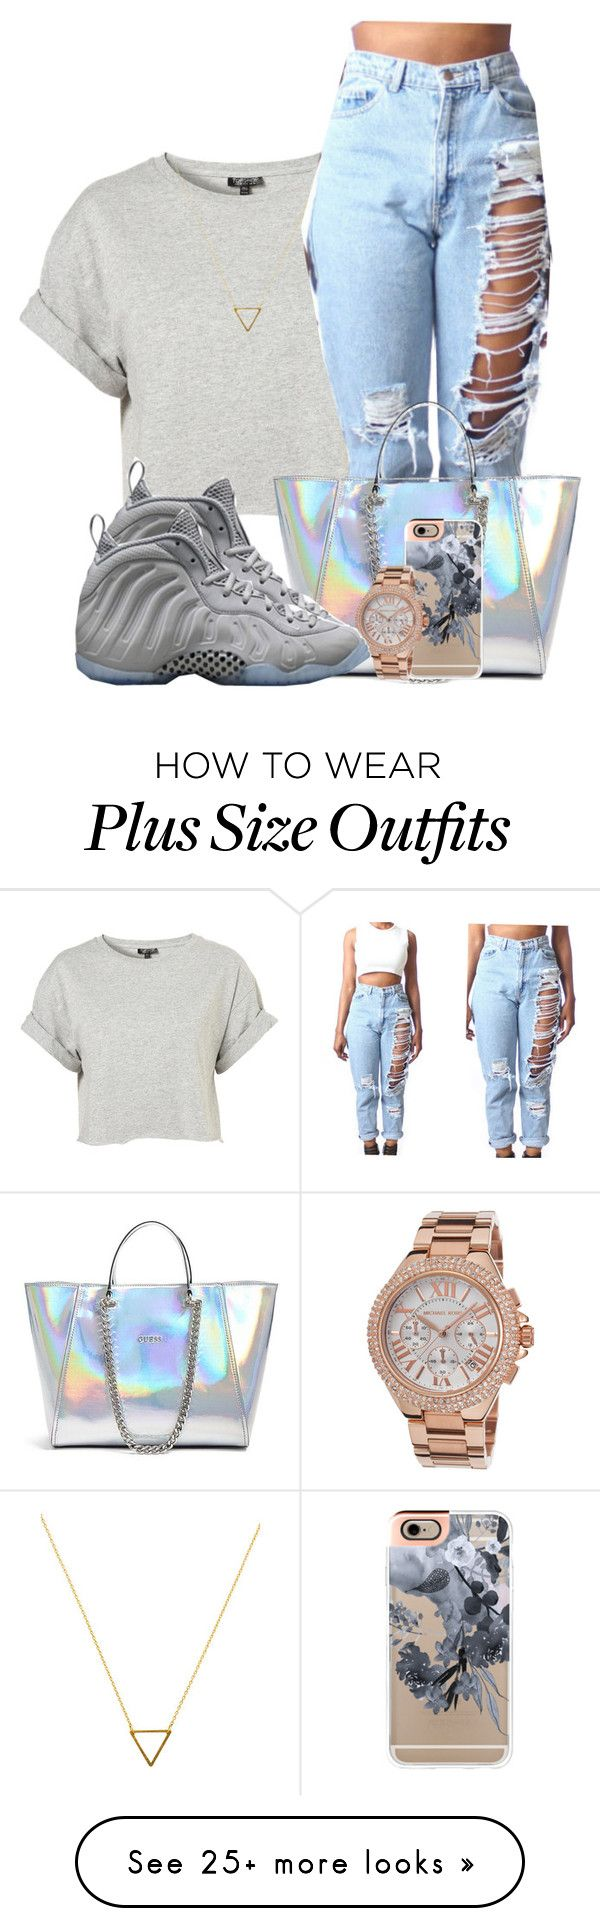 pull up on a kid  by chiamaka-ikaraoha on Polyvore featuring Topshop, Wanderlust   Co, GUESS, Casetify, Michael Kors, NIKE, womens clothing, womens fashion, women and female